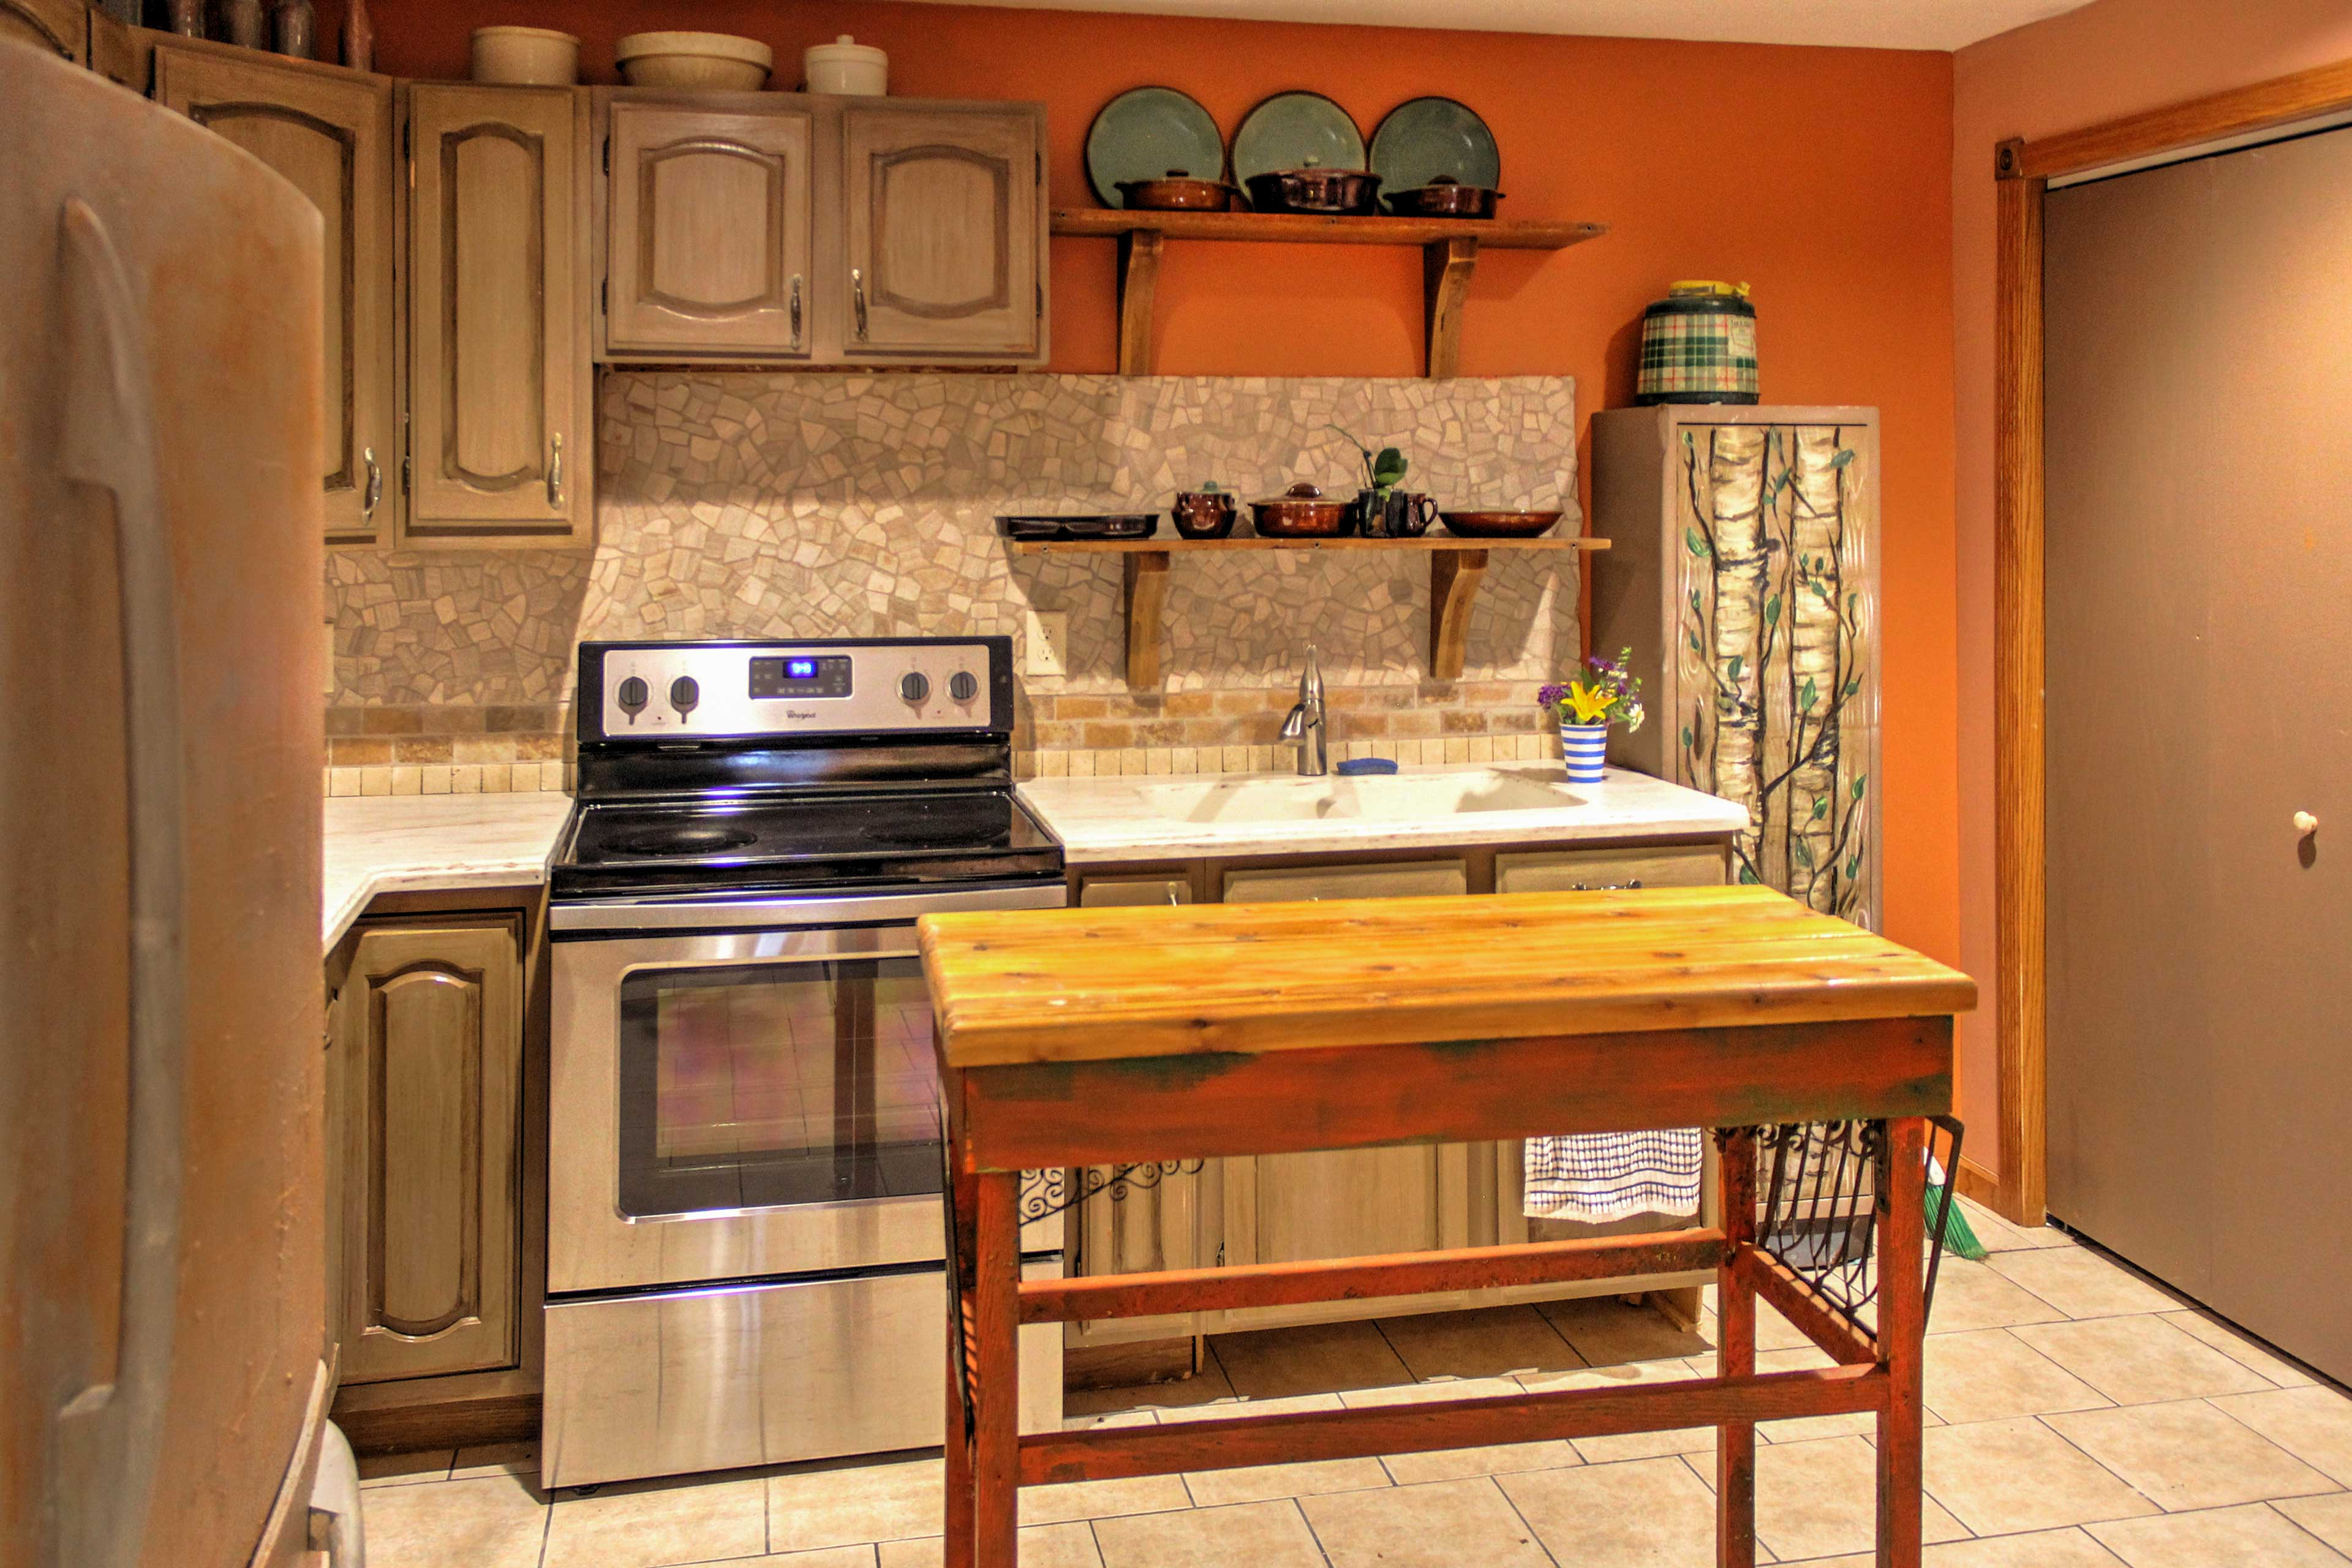 Enjoy homemade meals in this well-equipped kitchen.